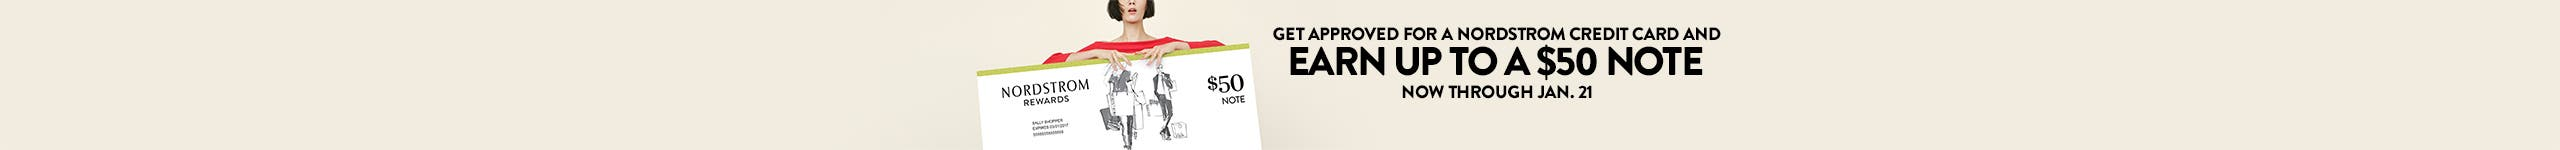 Get approved for a Nordstrom credit card and earn up to a $50 Note now through Feb 12.